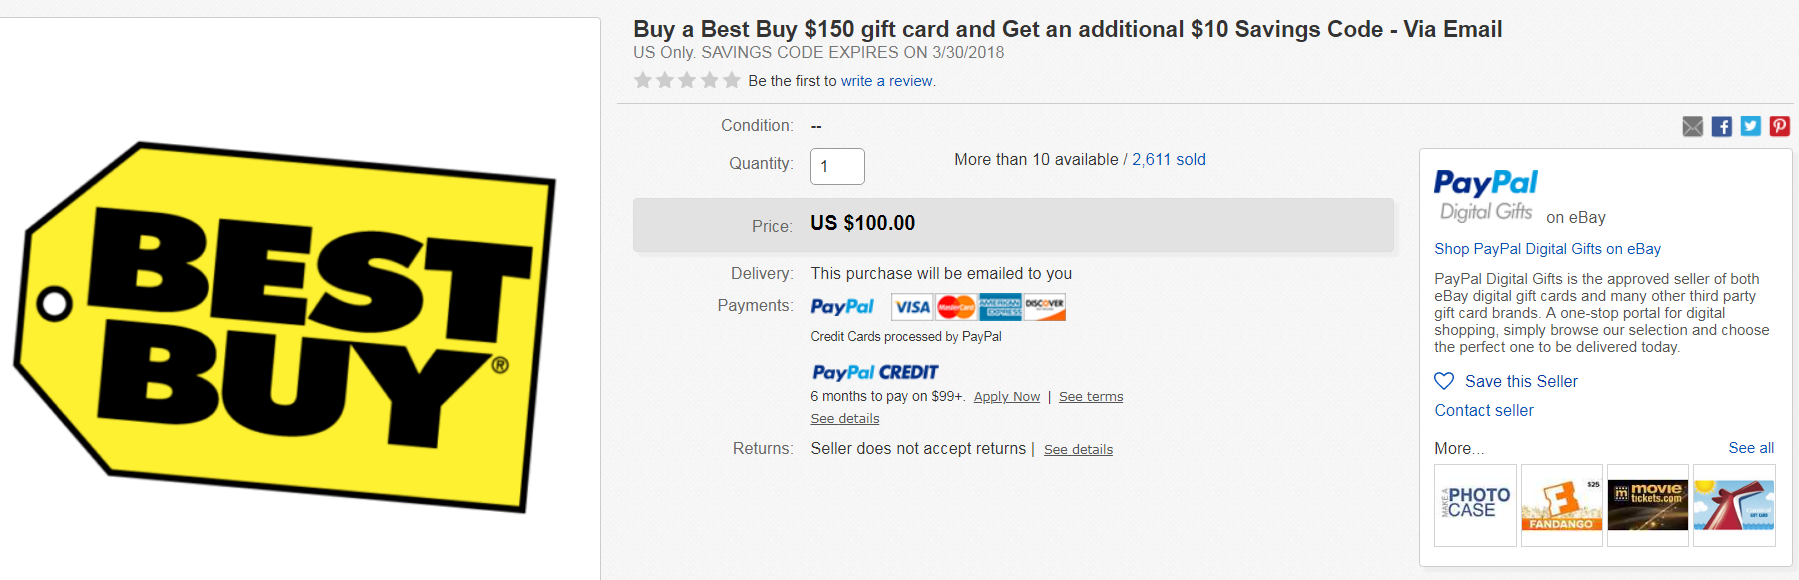 Hurry Price Mistake 150 Bestbuy Gift Card And 10 Off Code For Only 100 Shipped Via Ebay Daily Deals Dansdeals Com